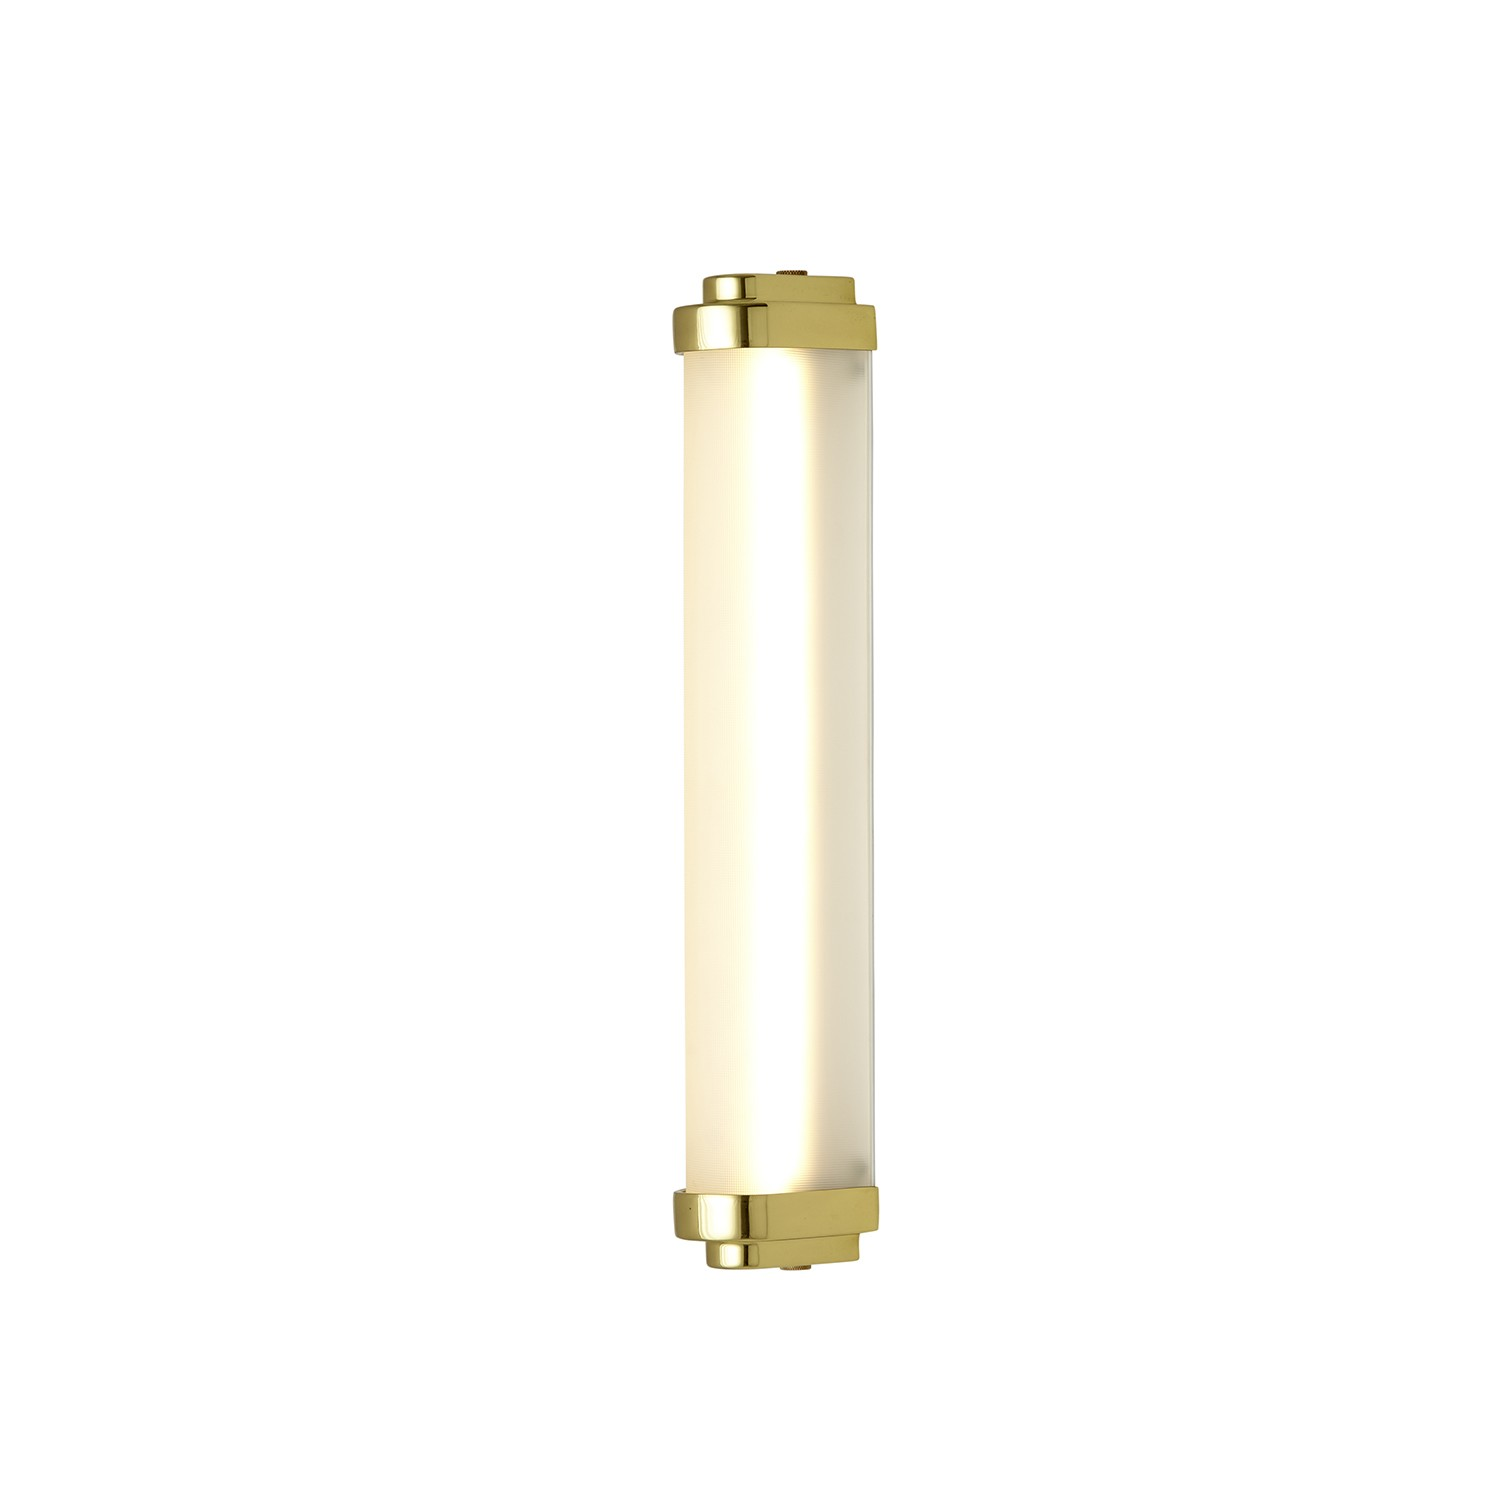 Cabin LED Wall Light Polished Brass, 40cm